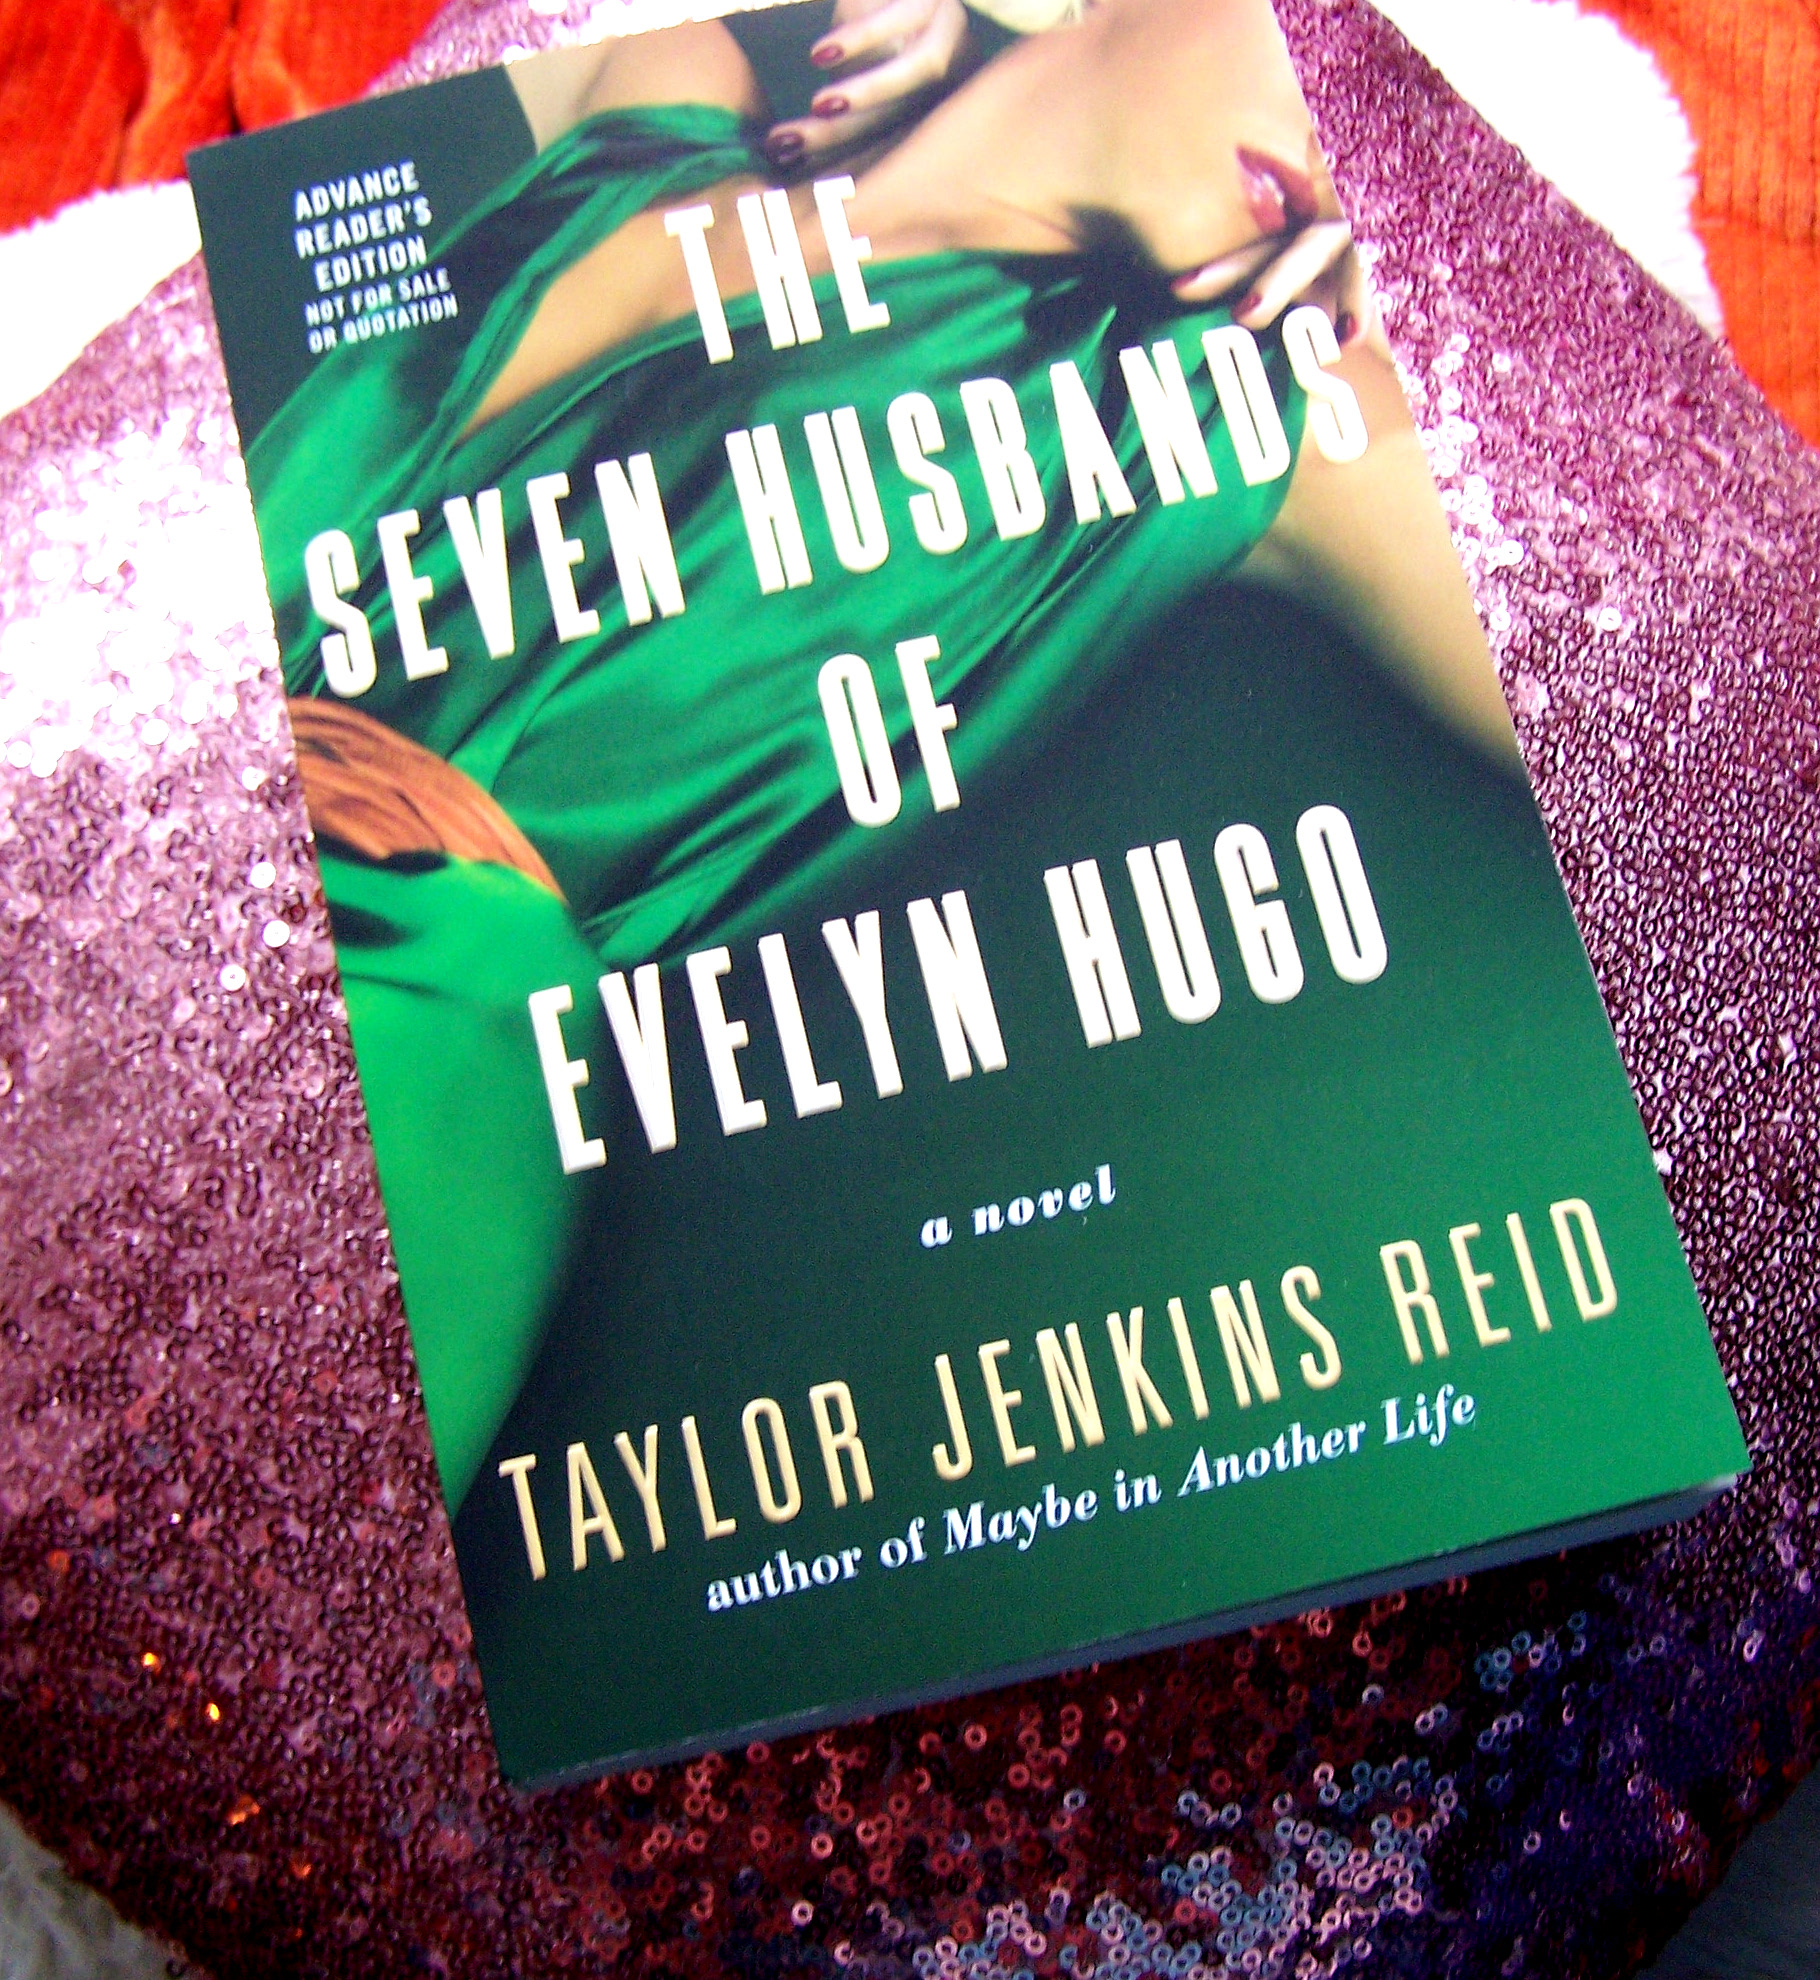 seven husbands of evelyn hugo books book reviews reading blogs ambassador review raing hollywood actress actresses elizabeth taylor marilin monroe love affairs gay lesbian homosexual relationships marriah=ge weddings novels fiction